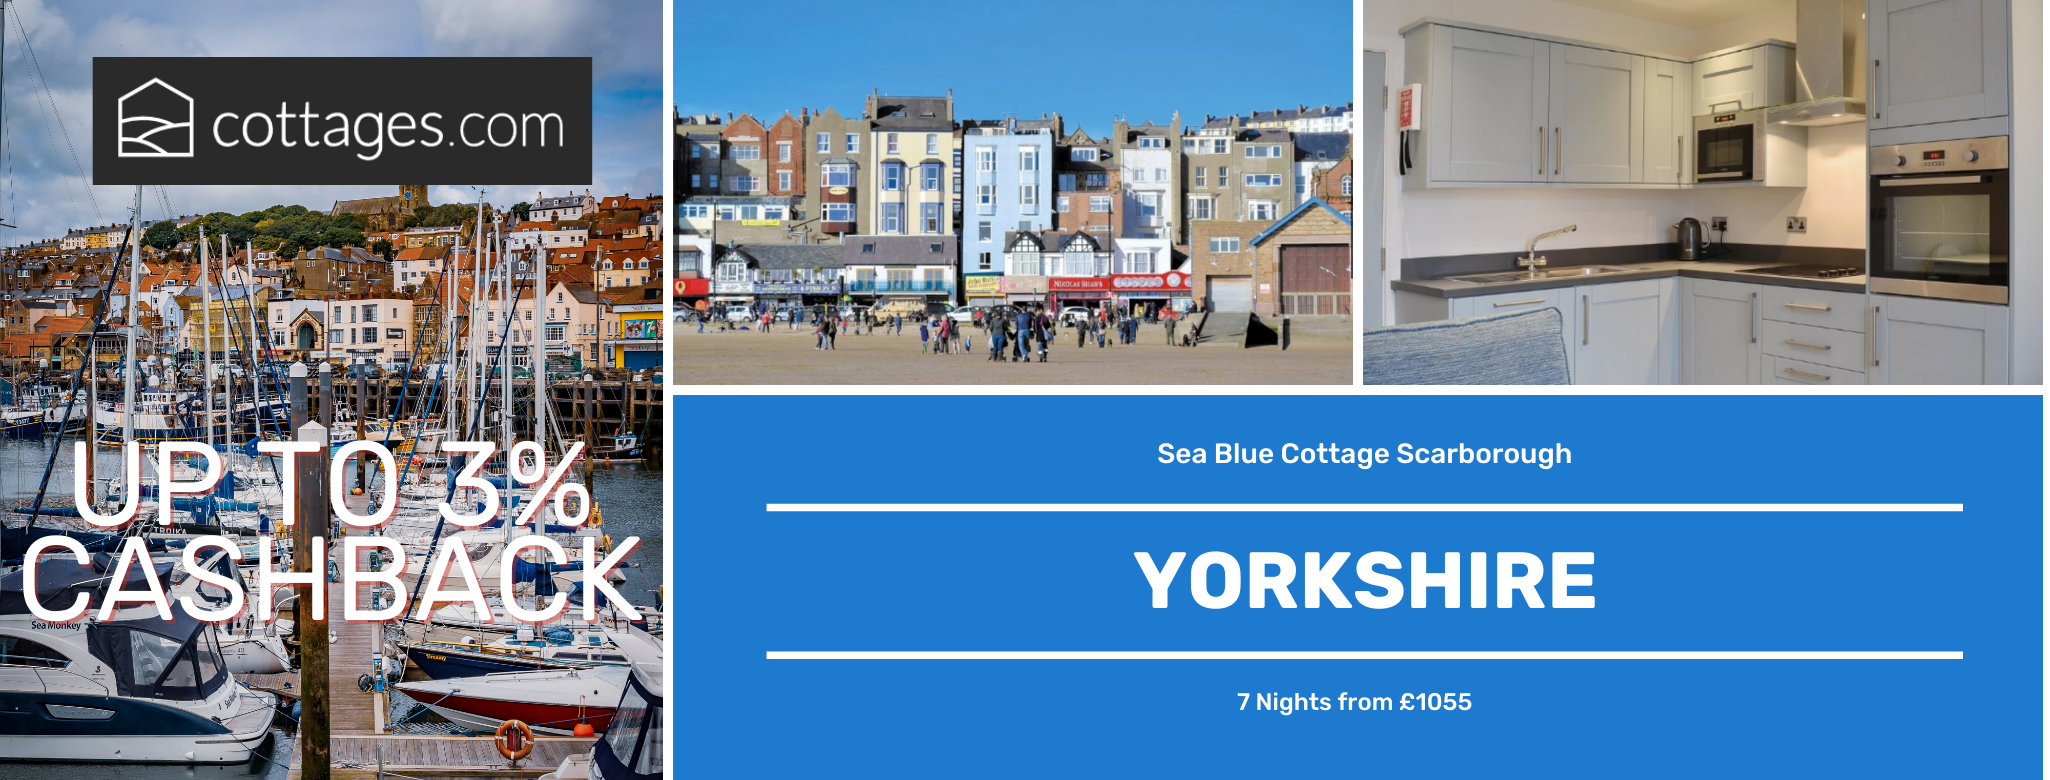 Cottages.com Yorkshire Up to 3% Cashback